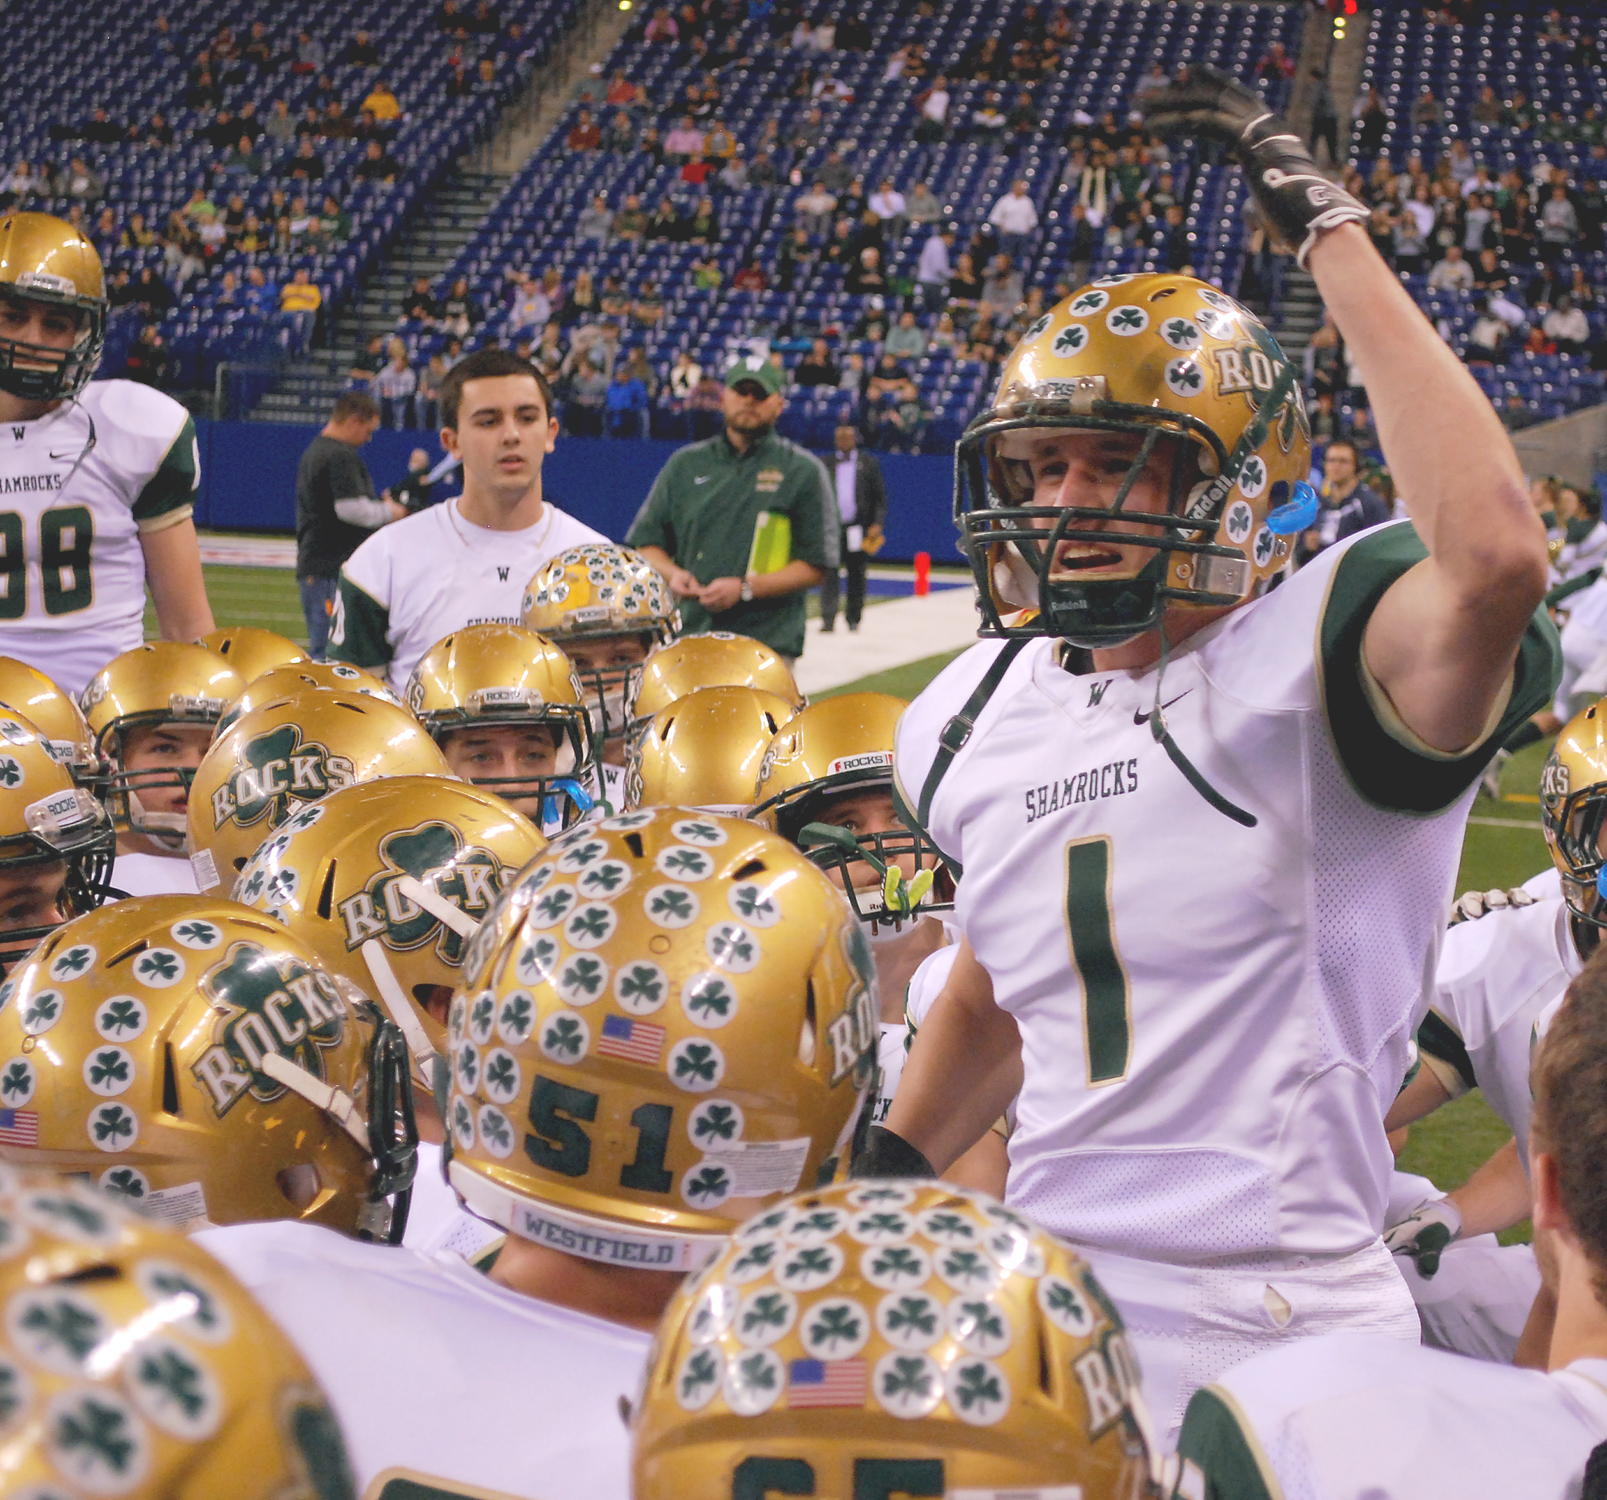 Senior Luke Peters fires up the team prior to kickoff of the Class 5A State Championship football game at Lucas Oil Stadium on Nov. 22. (Photo by Robert Herrington)